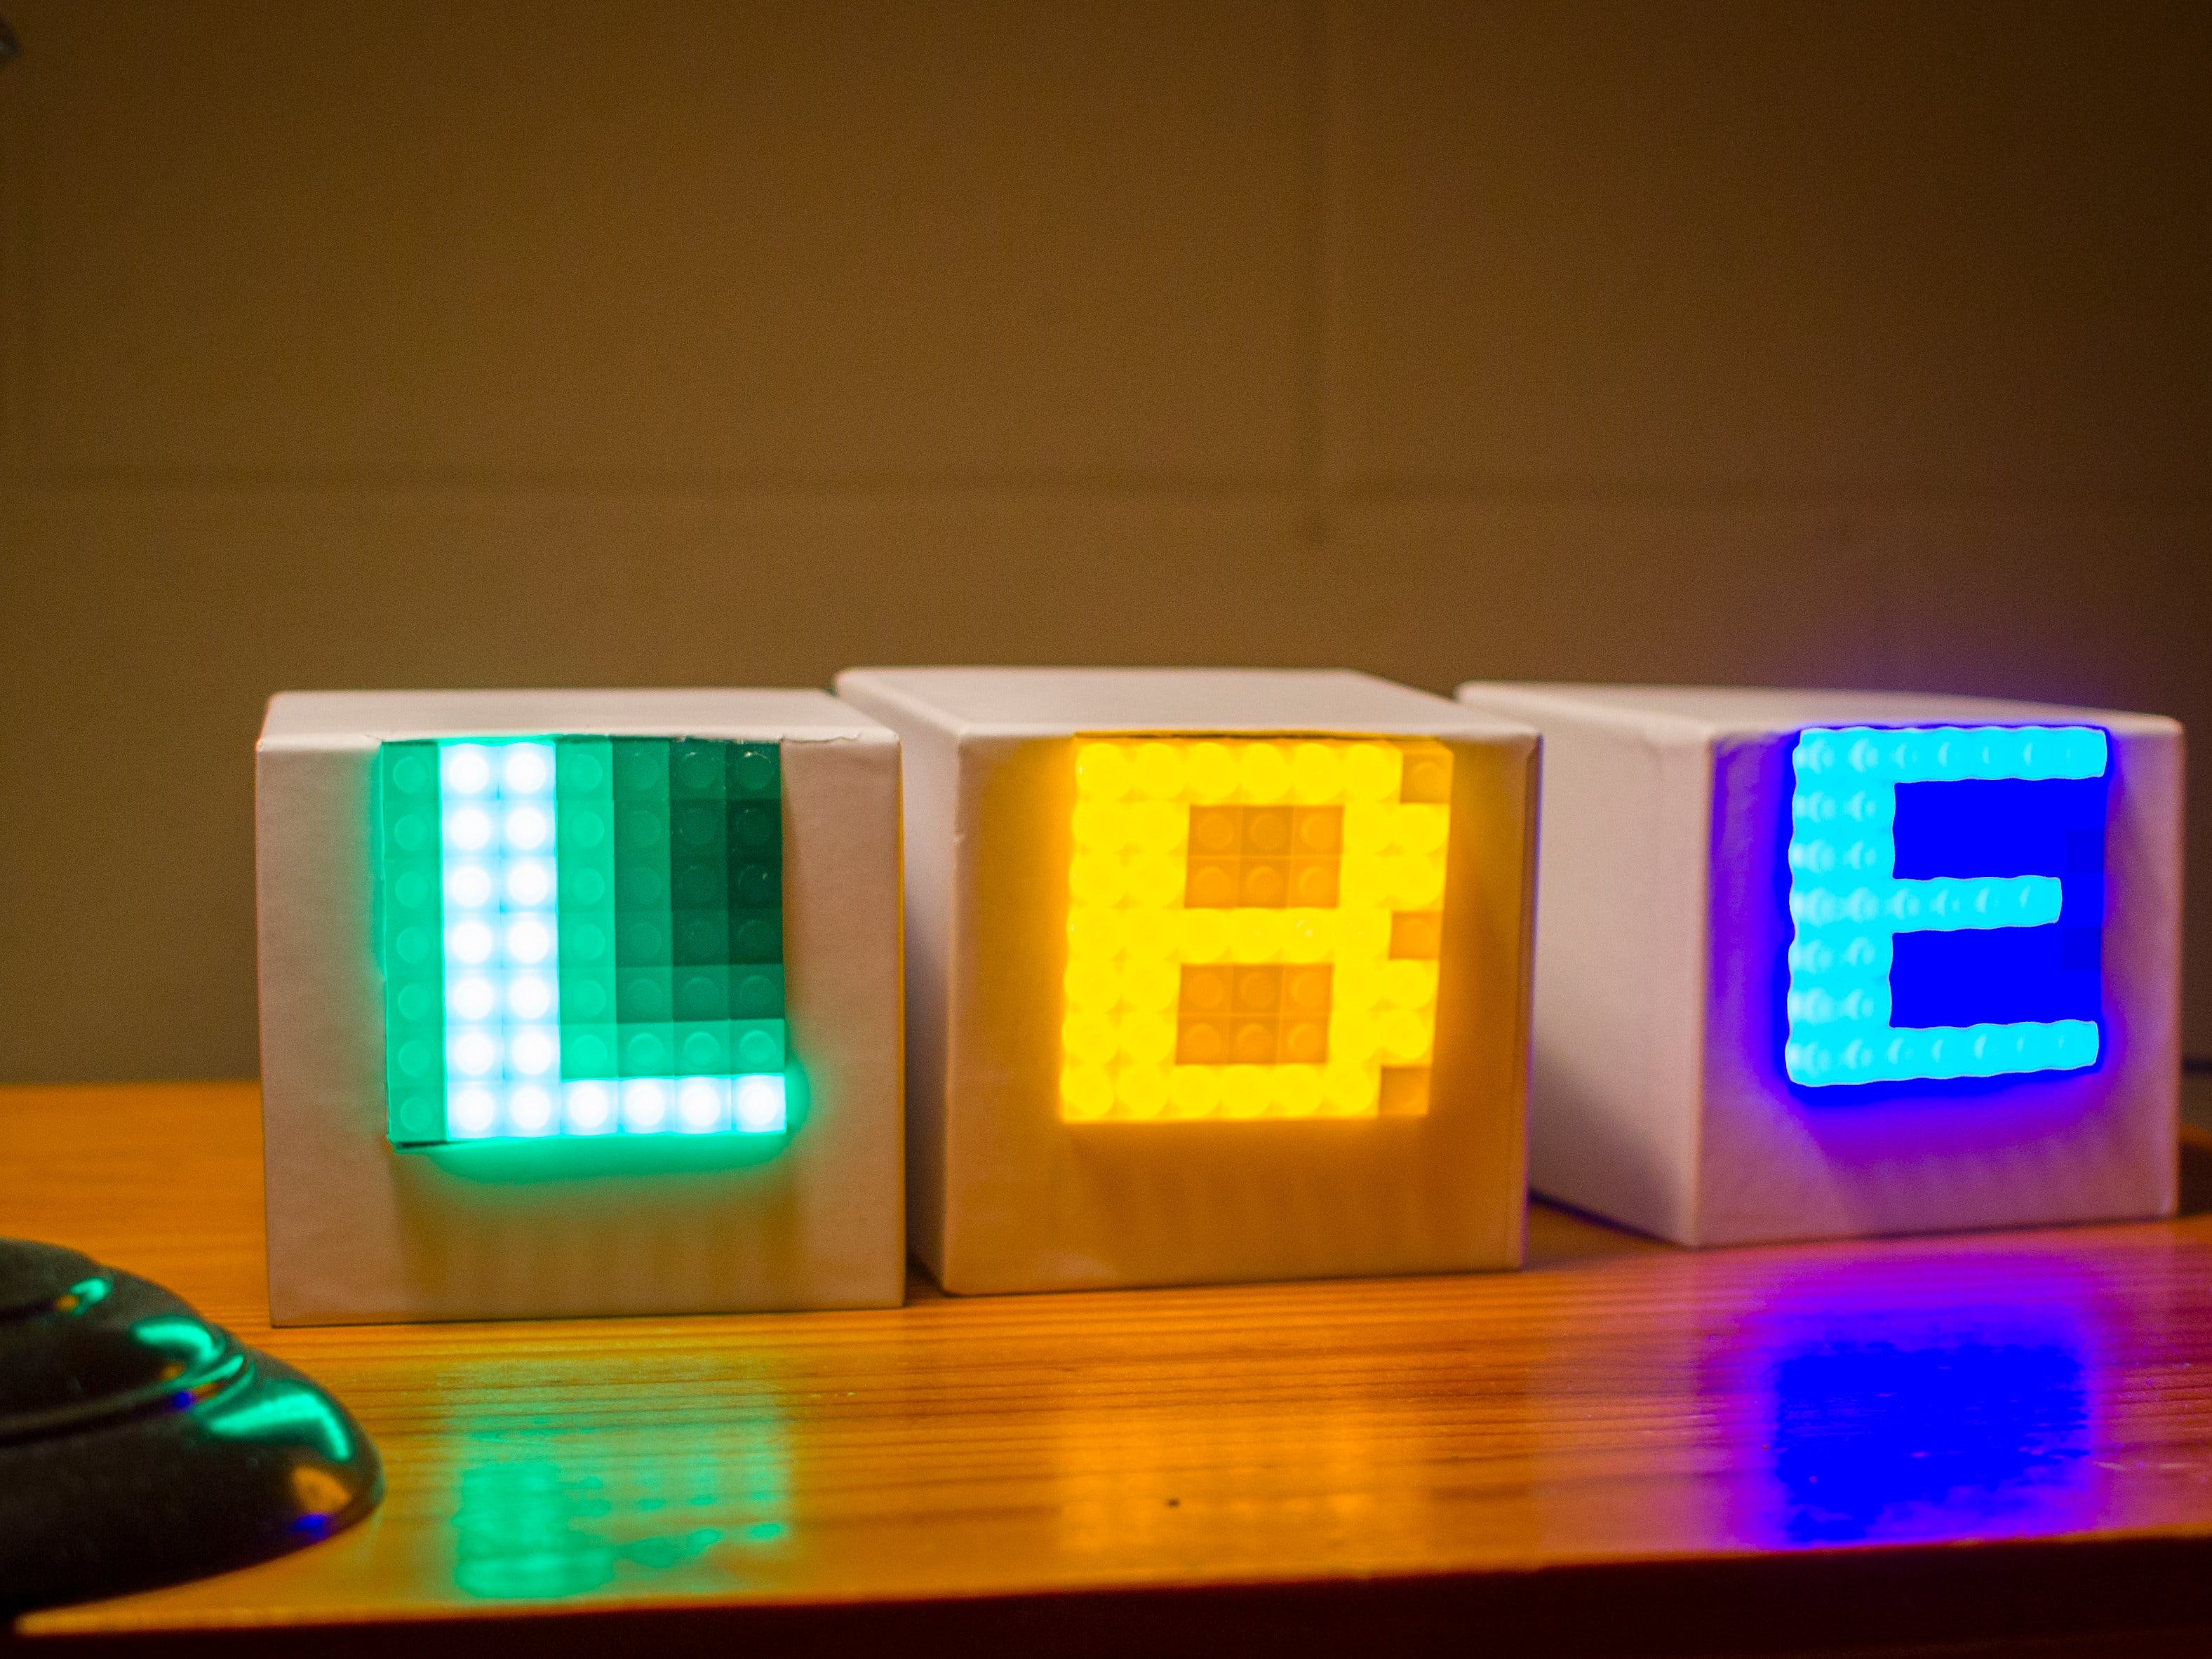 Lego Compatible Name Display